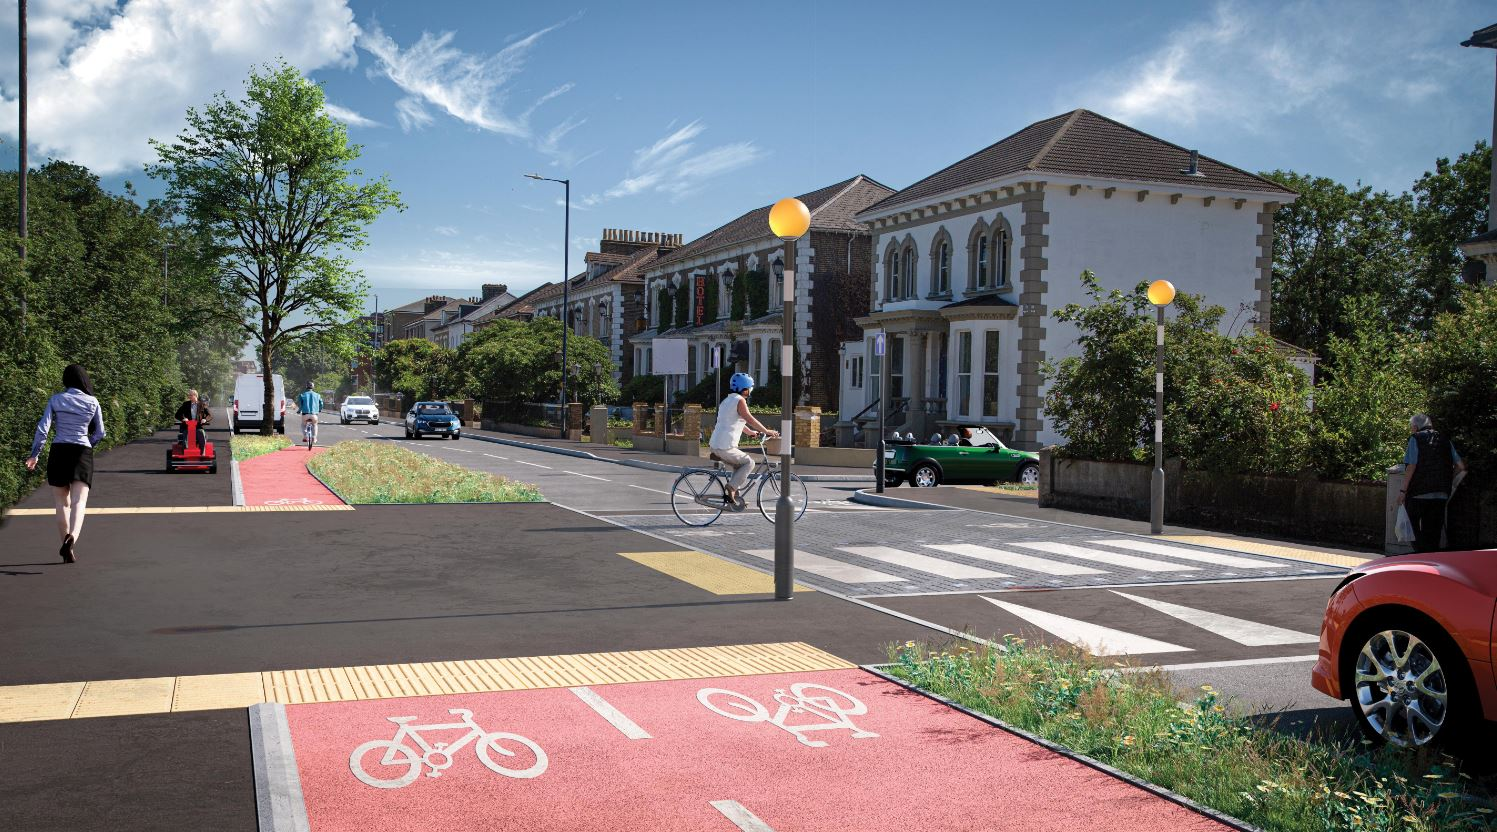 Second round of consultation opens for Active Travel schemes